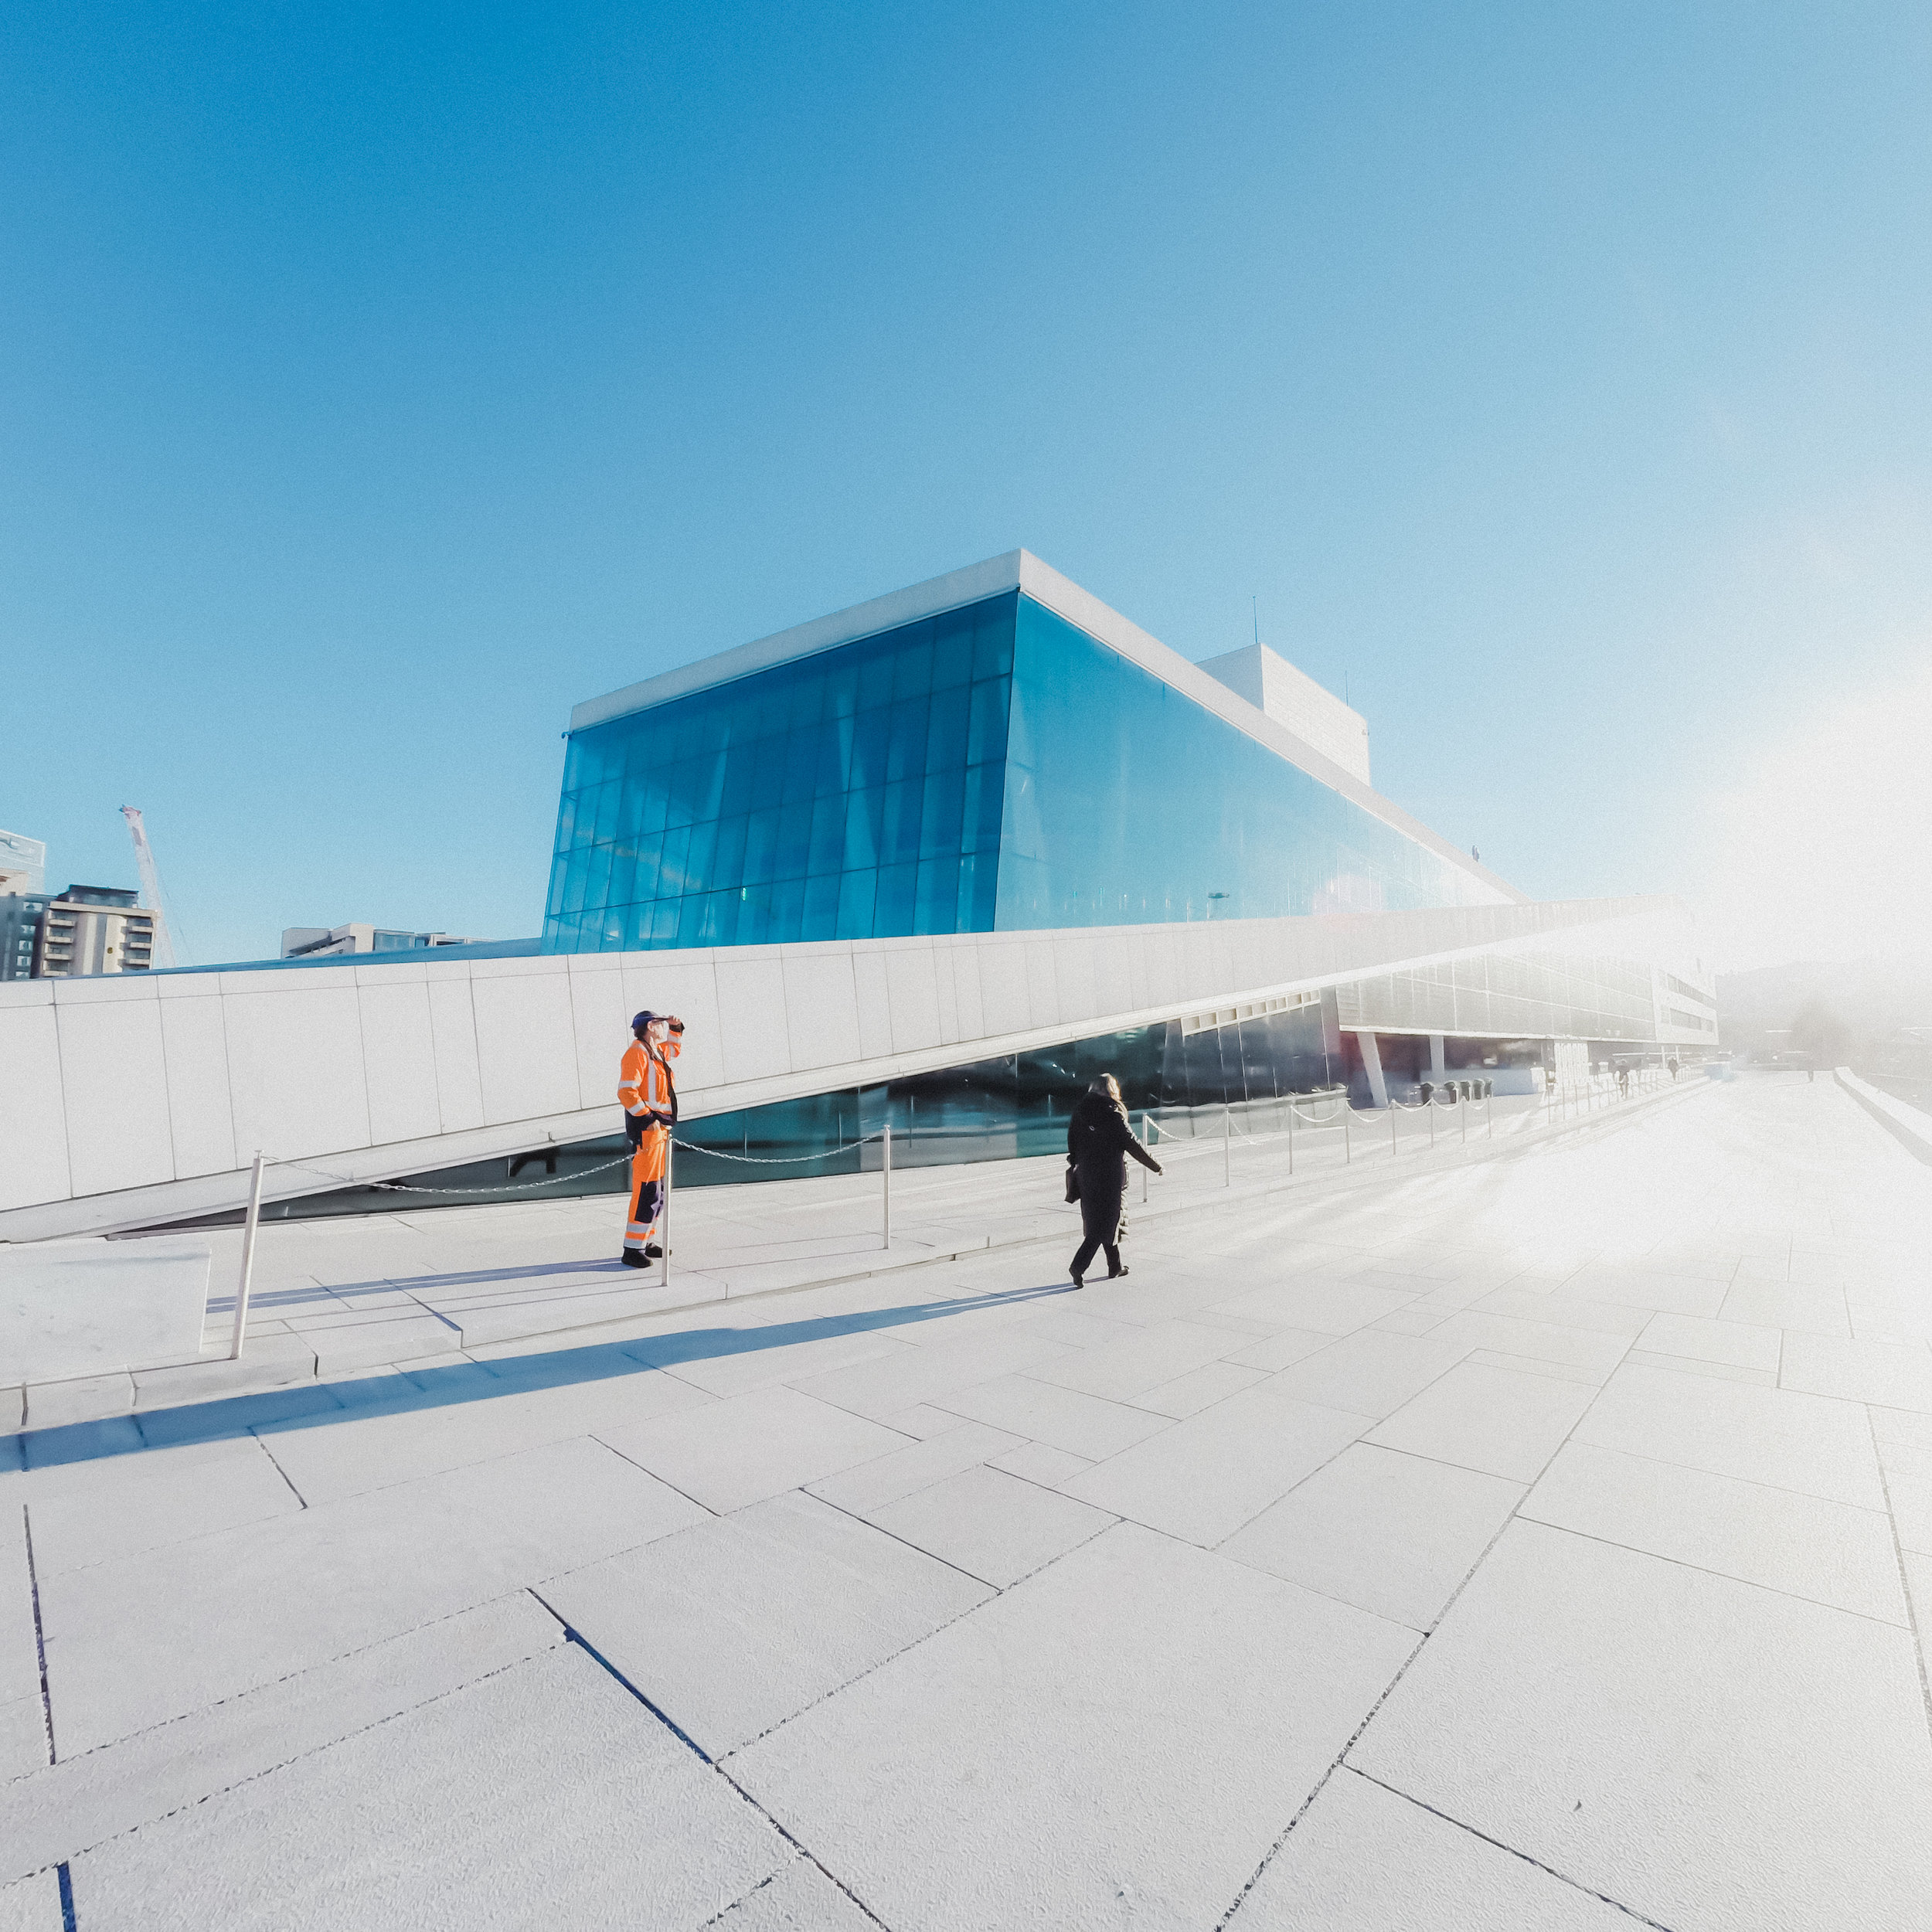 Essential travel information about Oslo — Oslo Fjord Norway